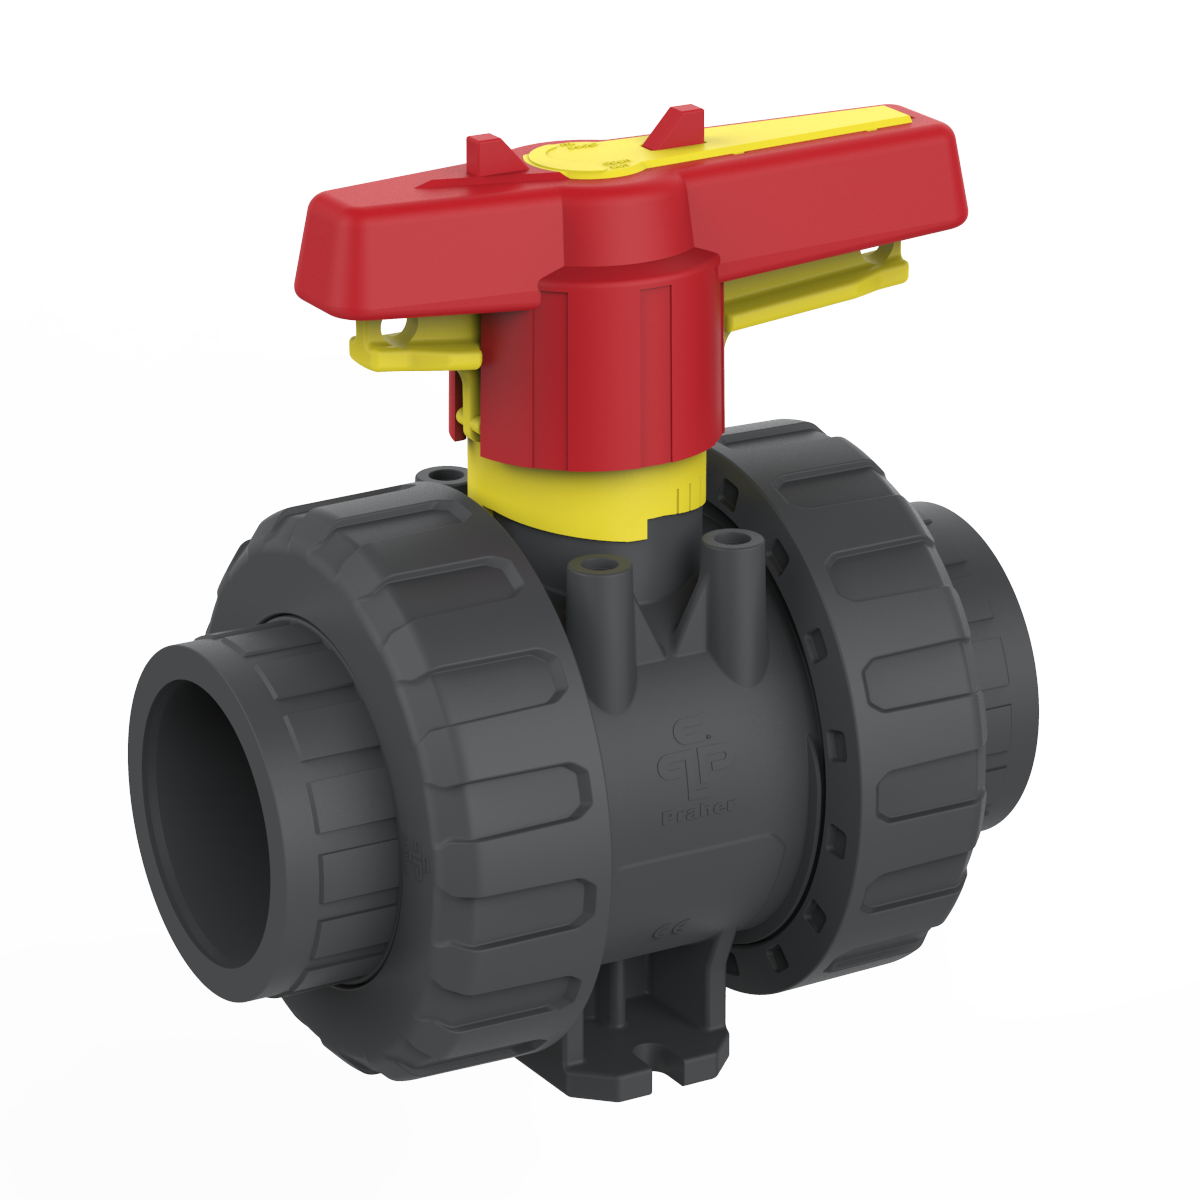 2-way ball valve M1 PVC manual, grey, yellow, red